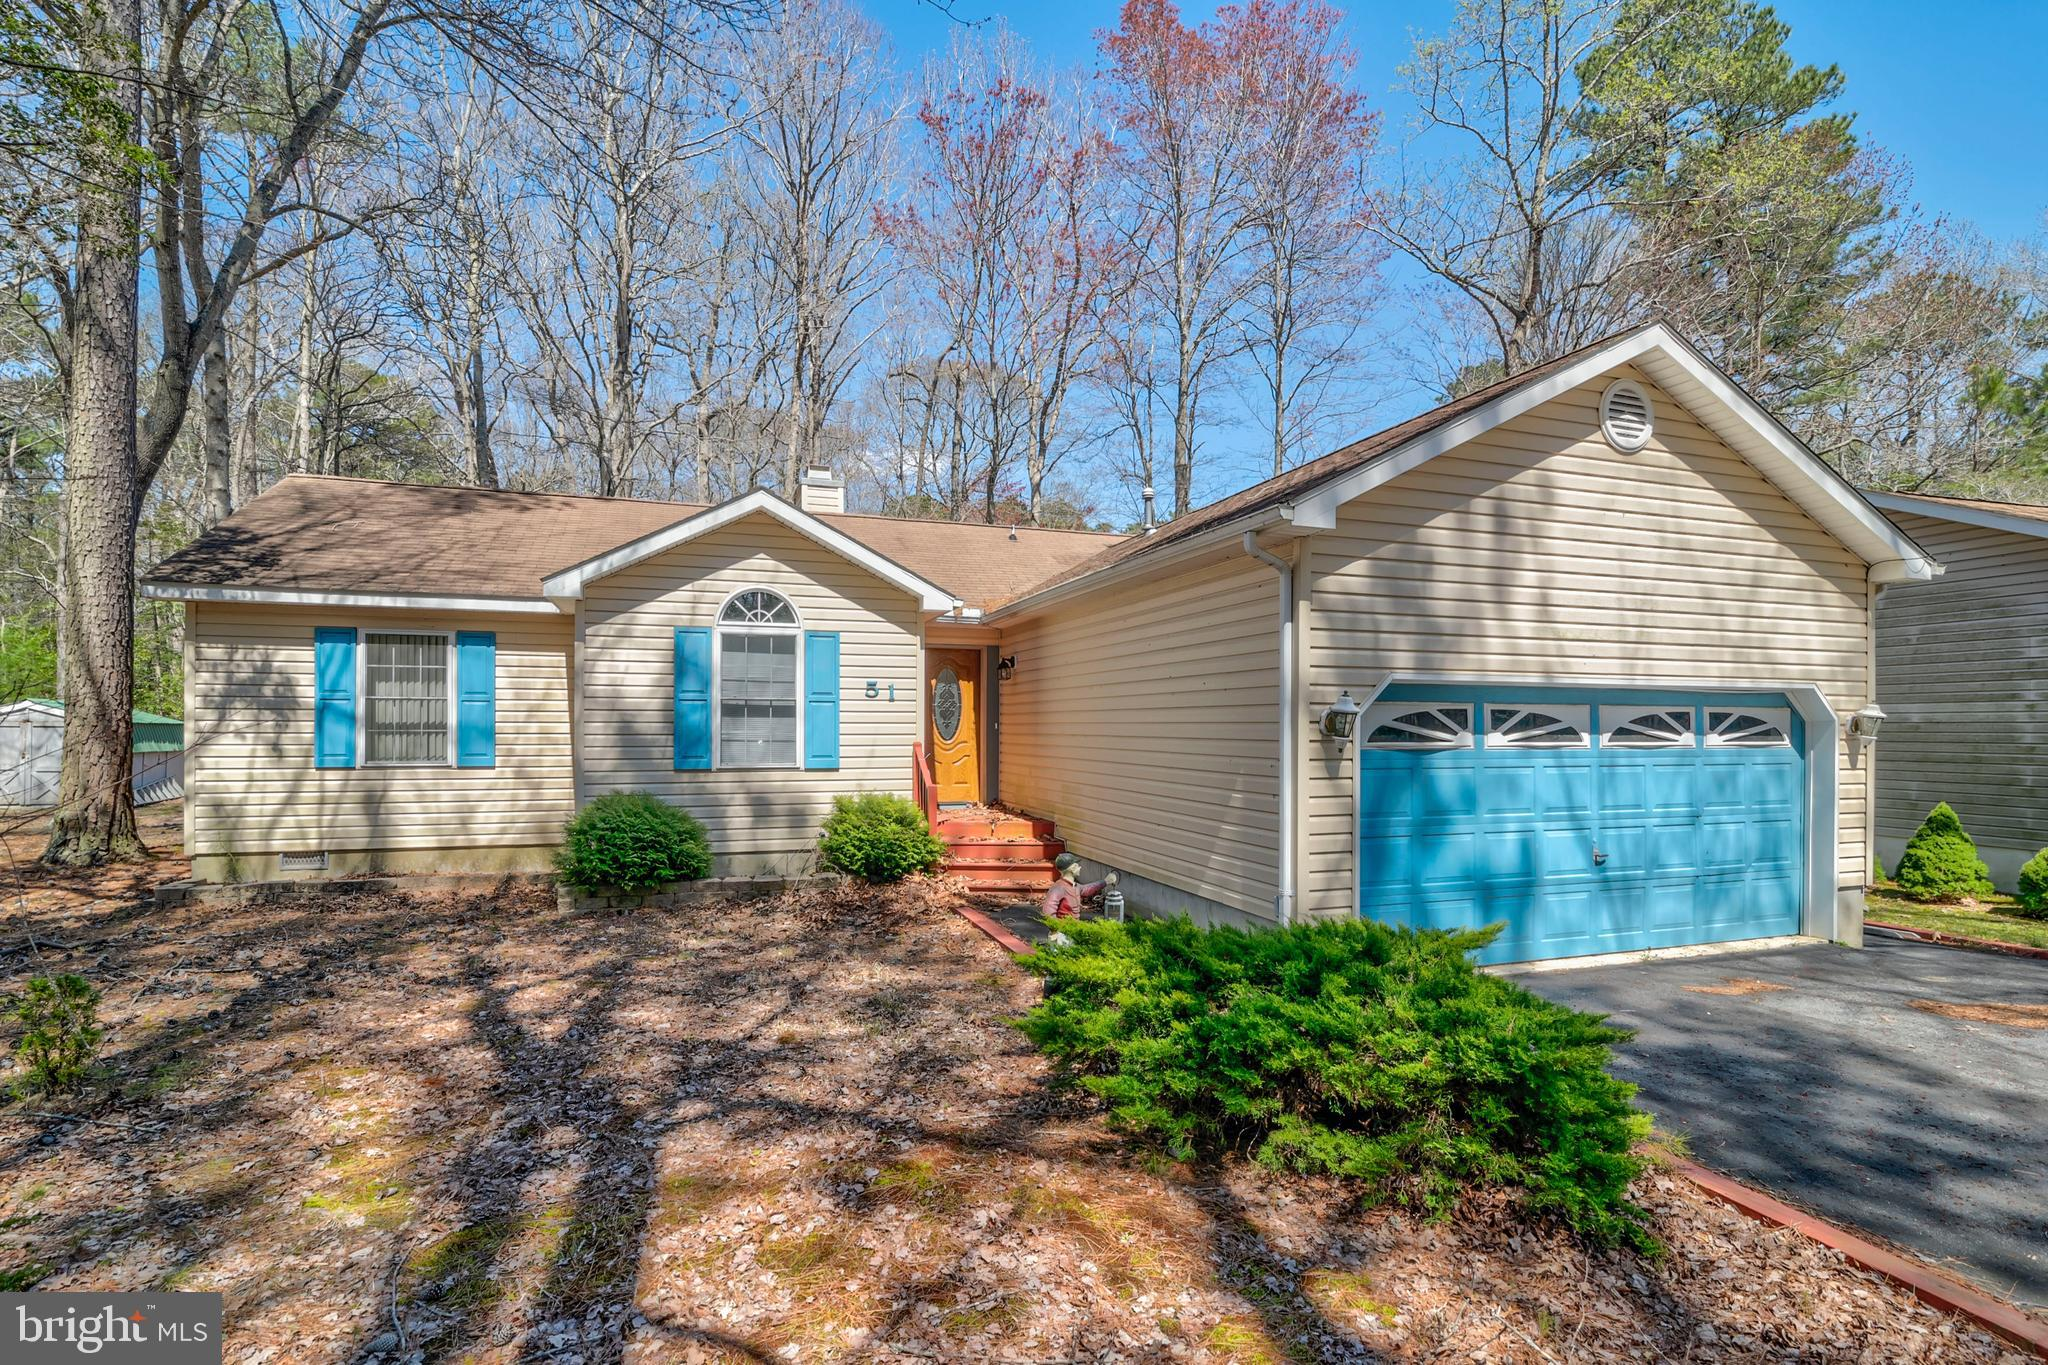 51 Tail The Fox Dr, Ocean Pines, MD, 21811